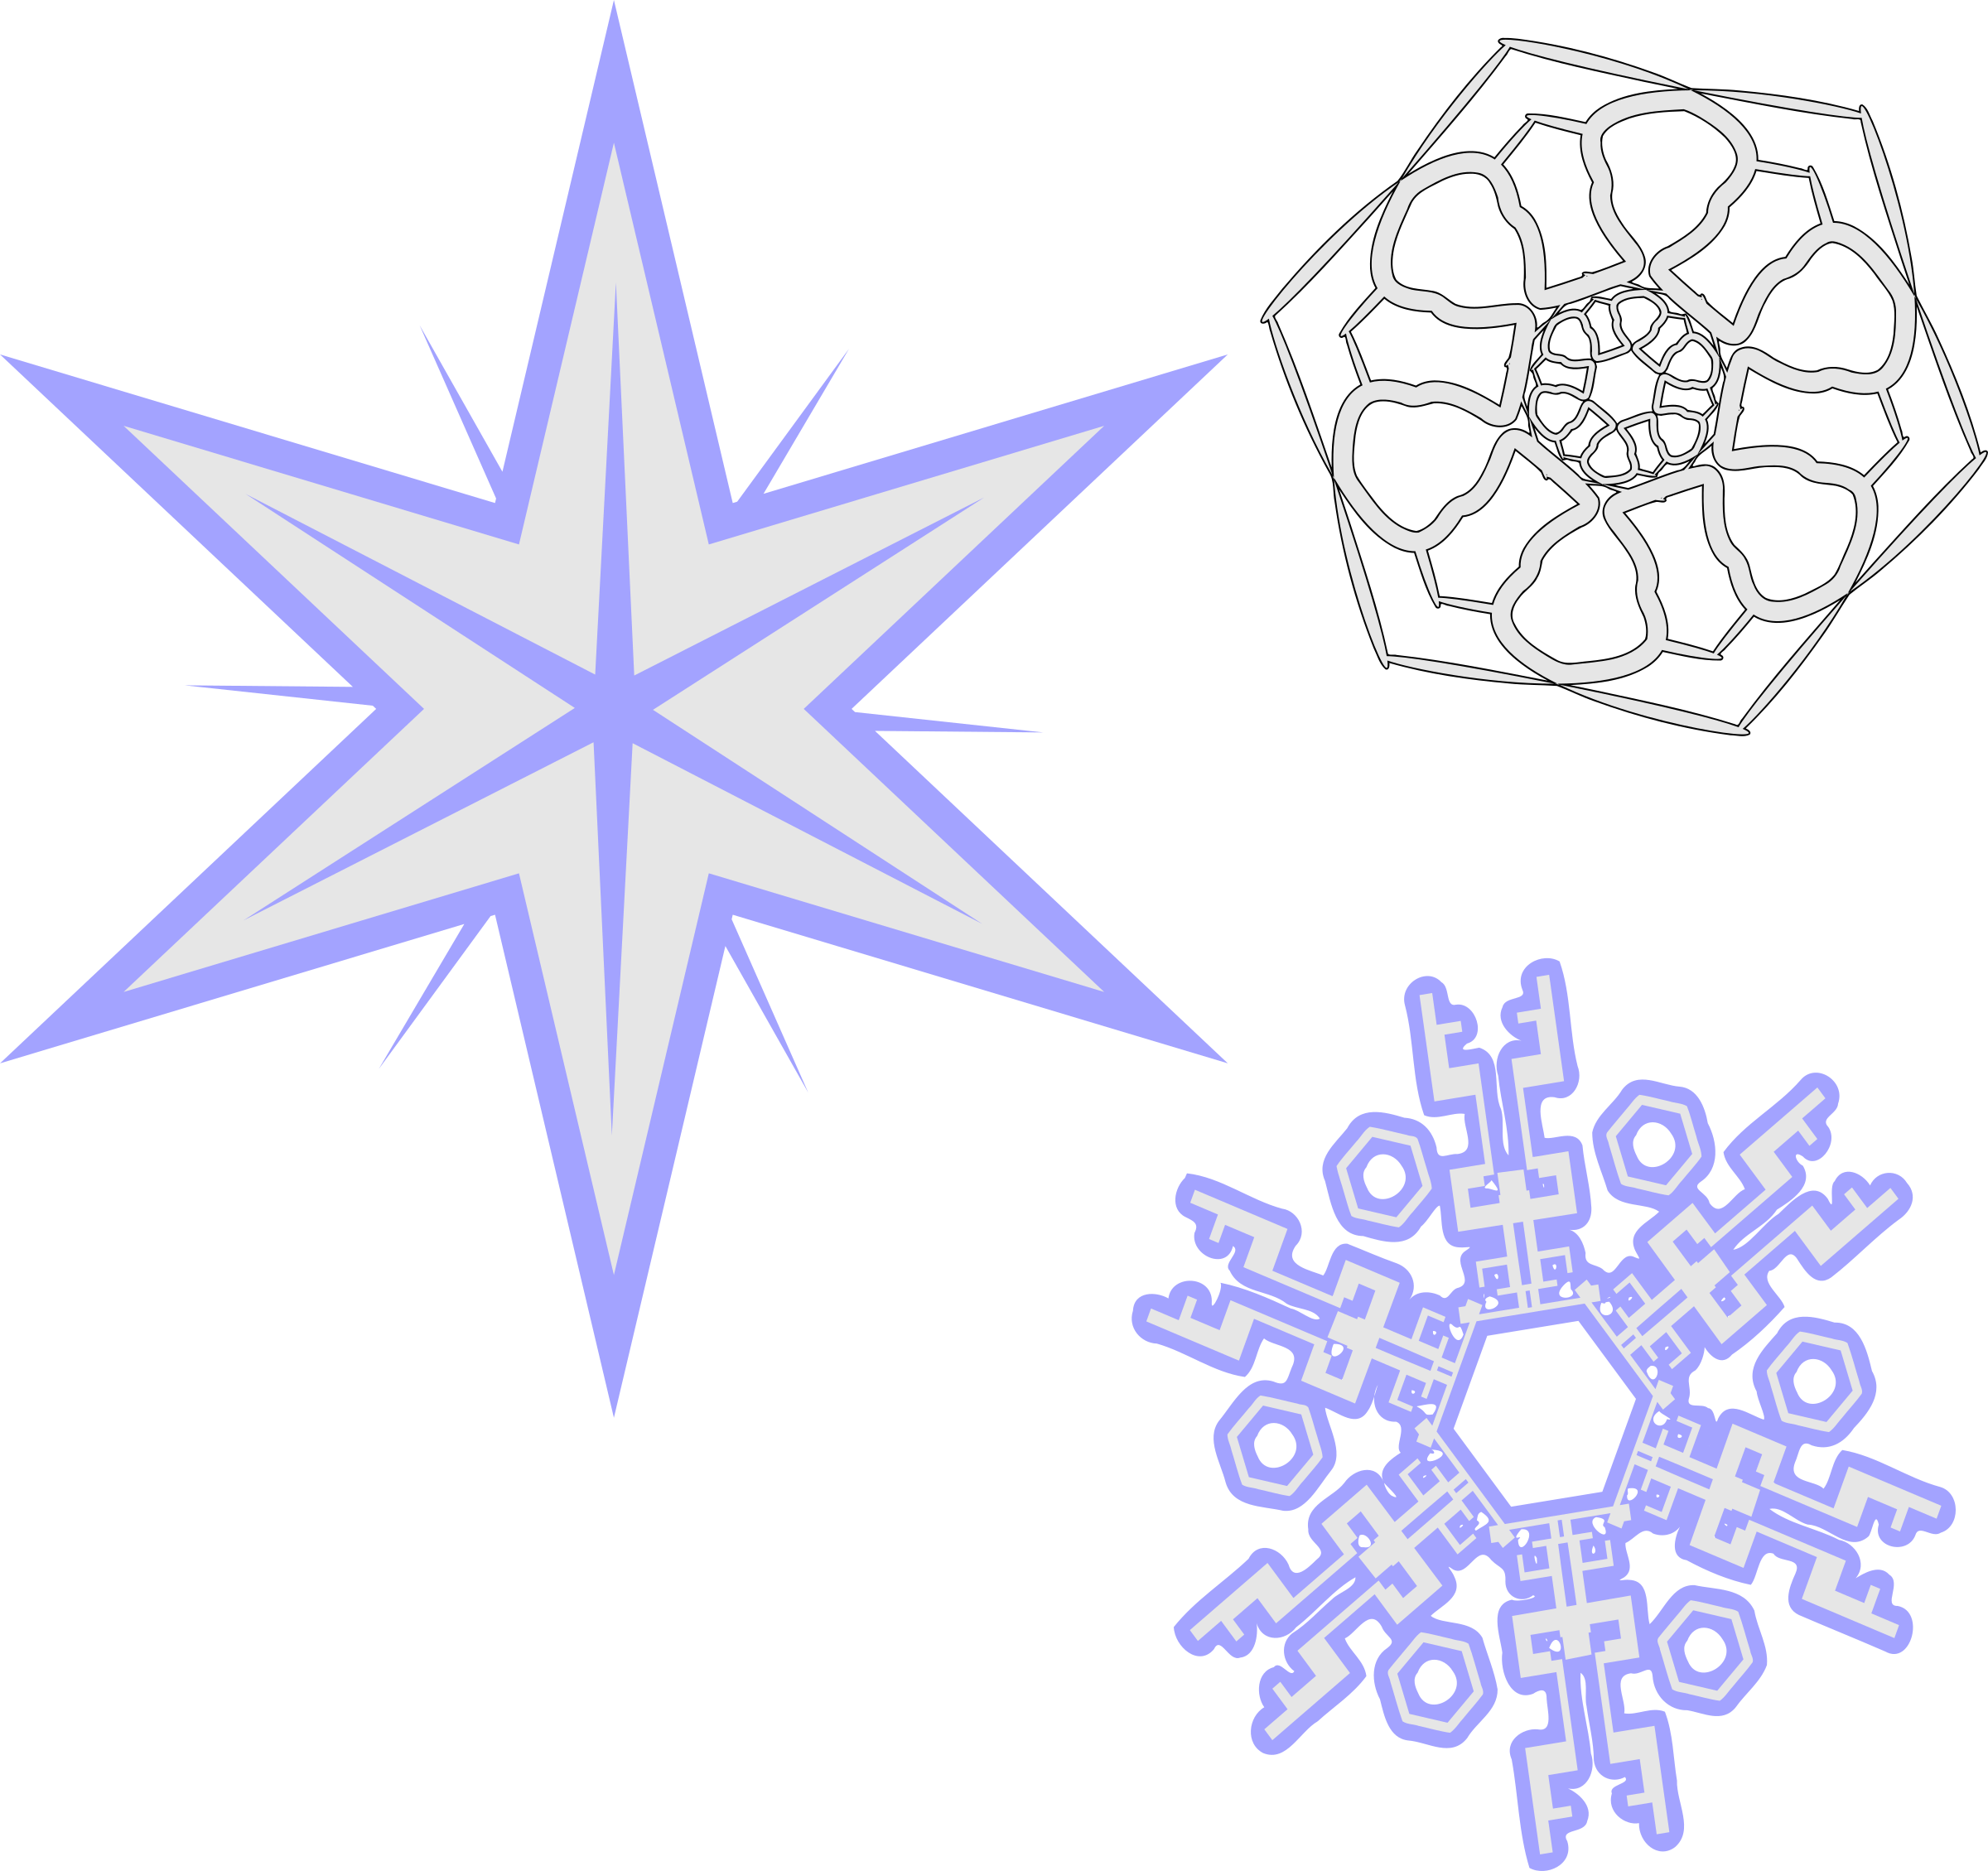 Snowflake clipart for microsoft office banner transparent library Clipart - 3 Snowflakes banner transparent library